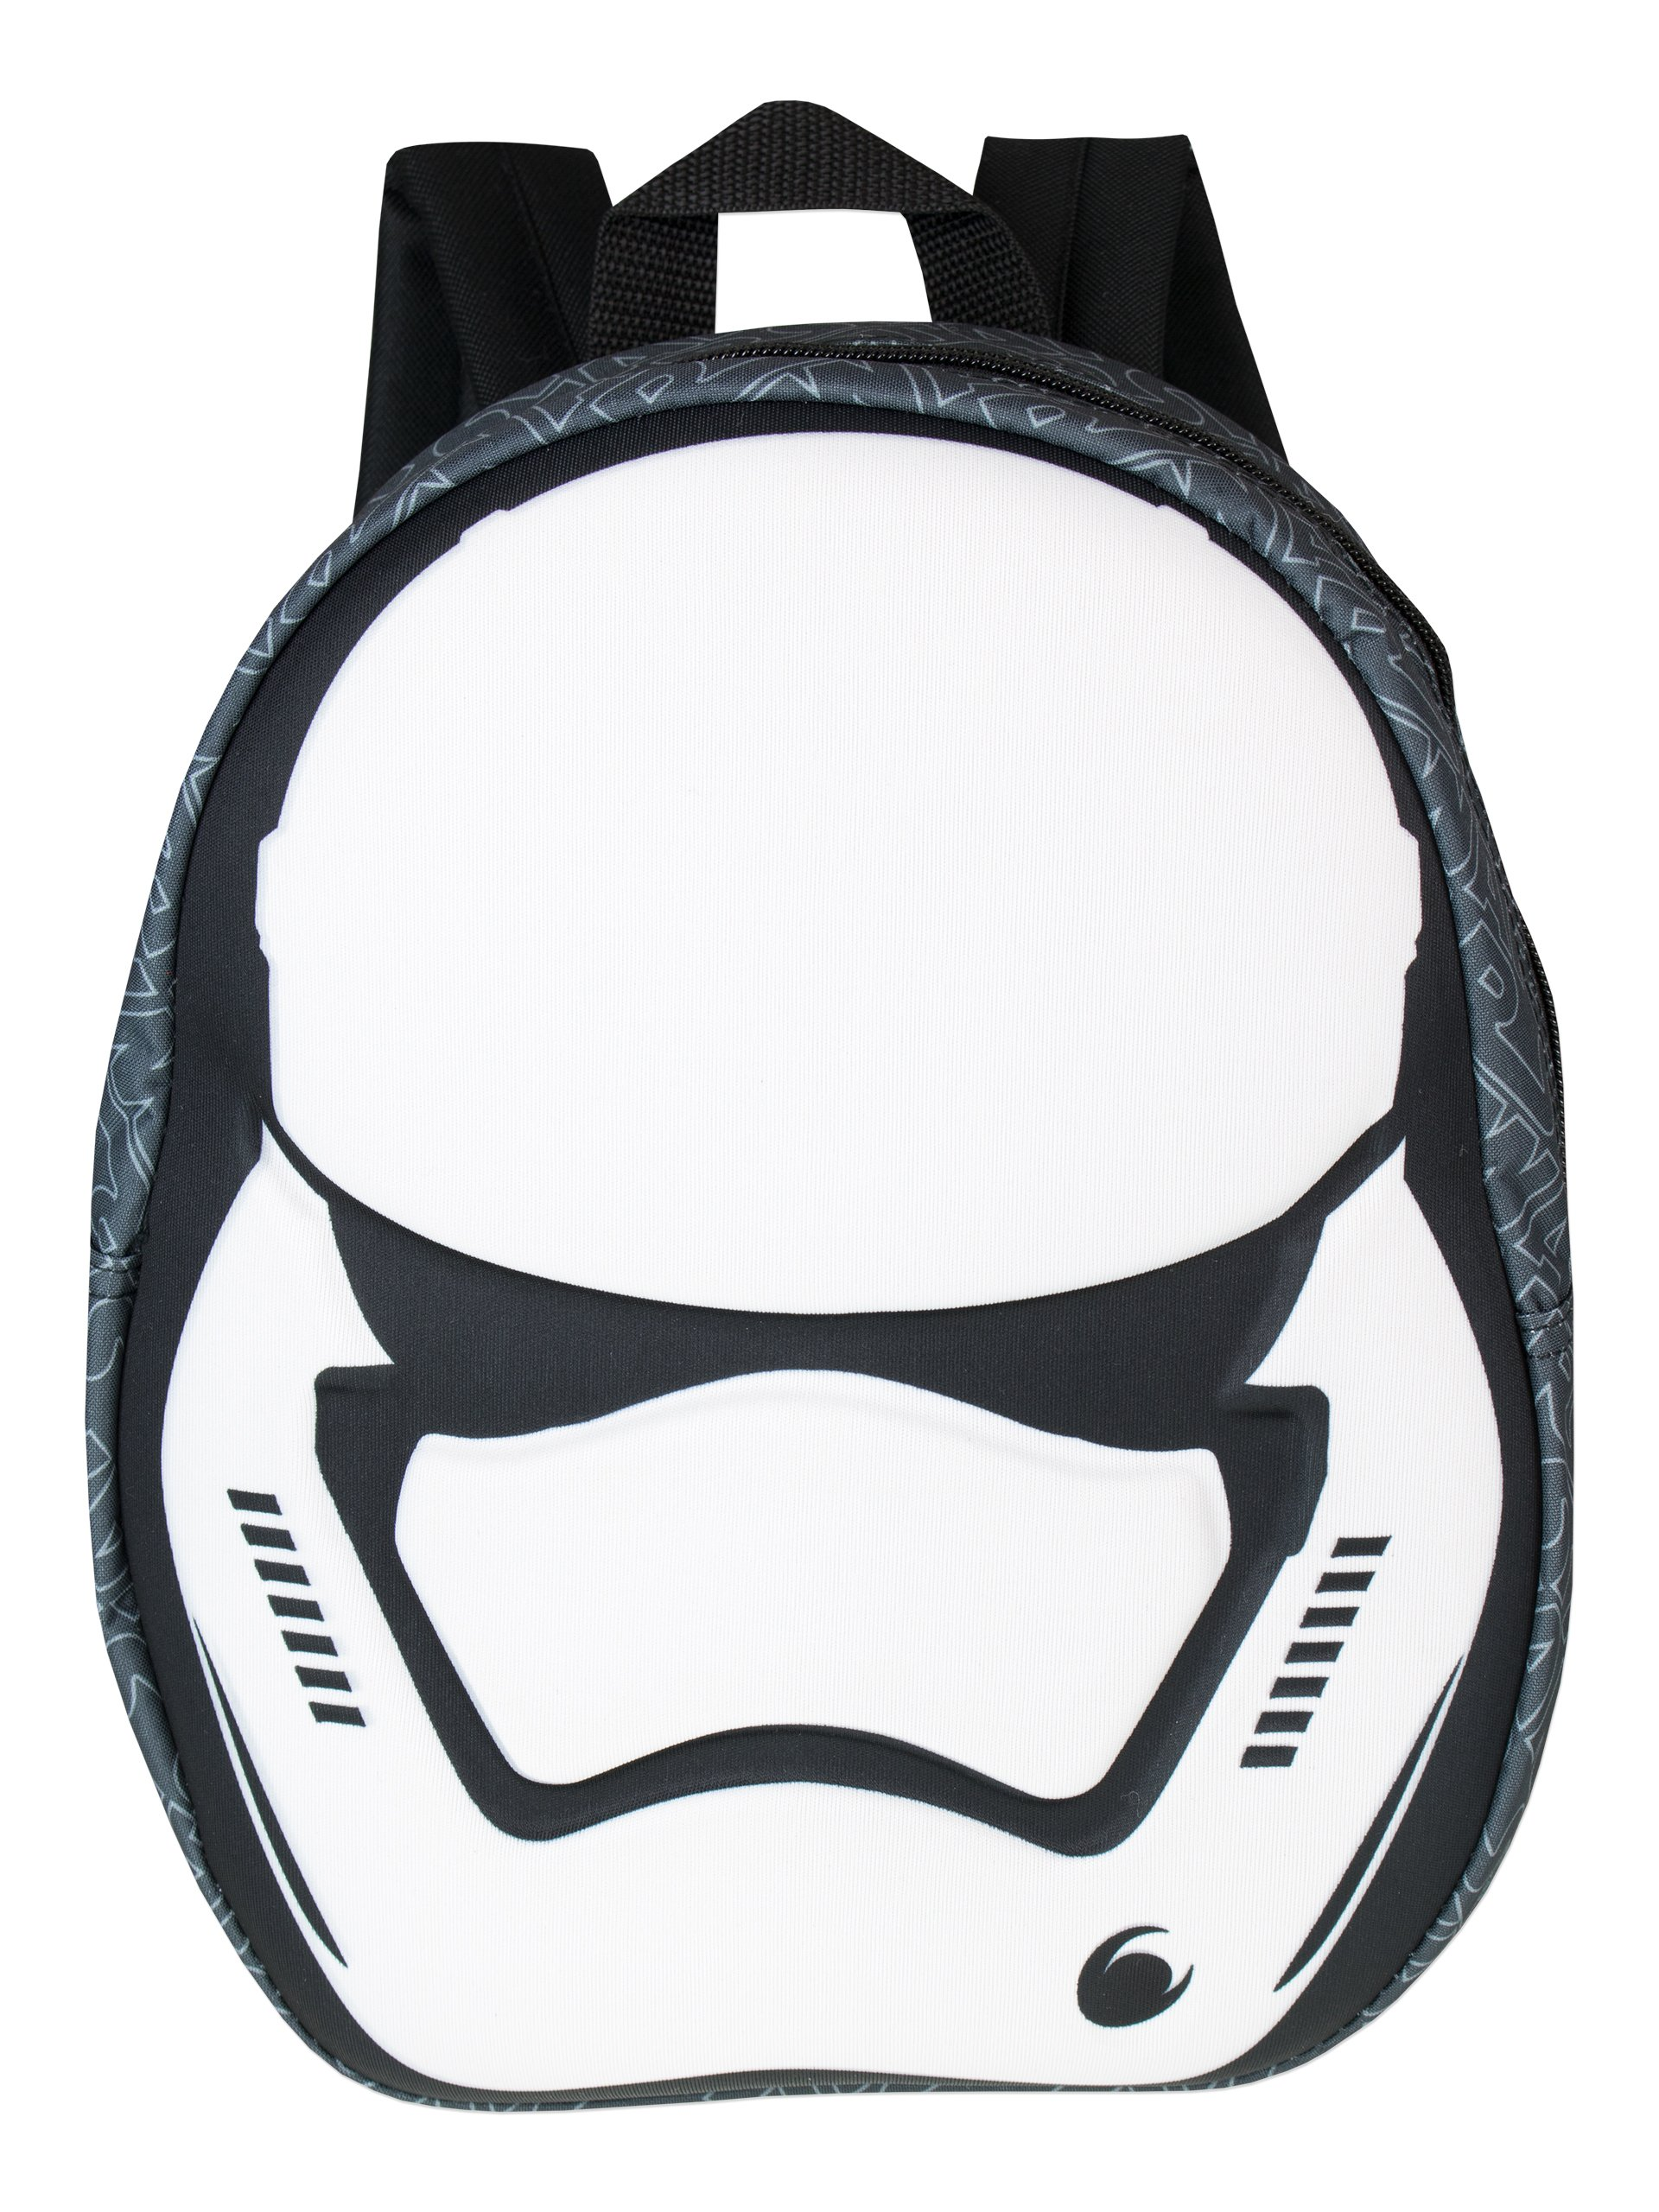 91H8tjSqaqL - Star Wars - Mochila - Star Wars Stormtrooper